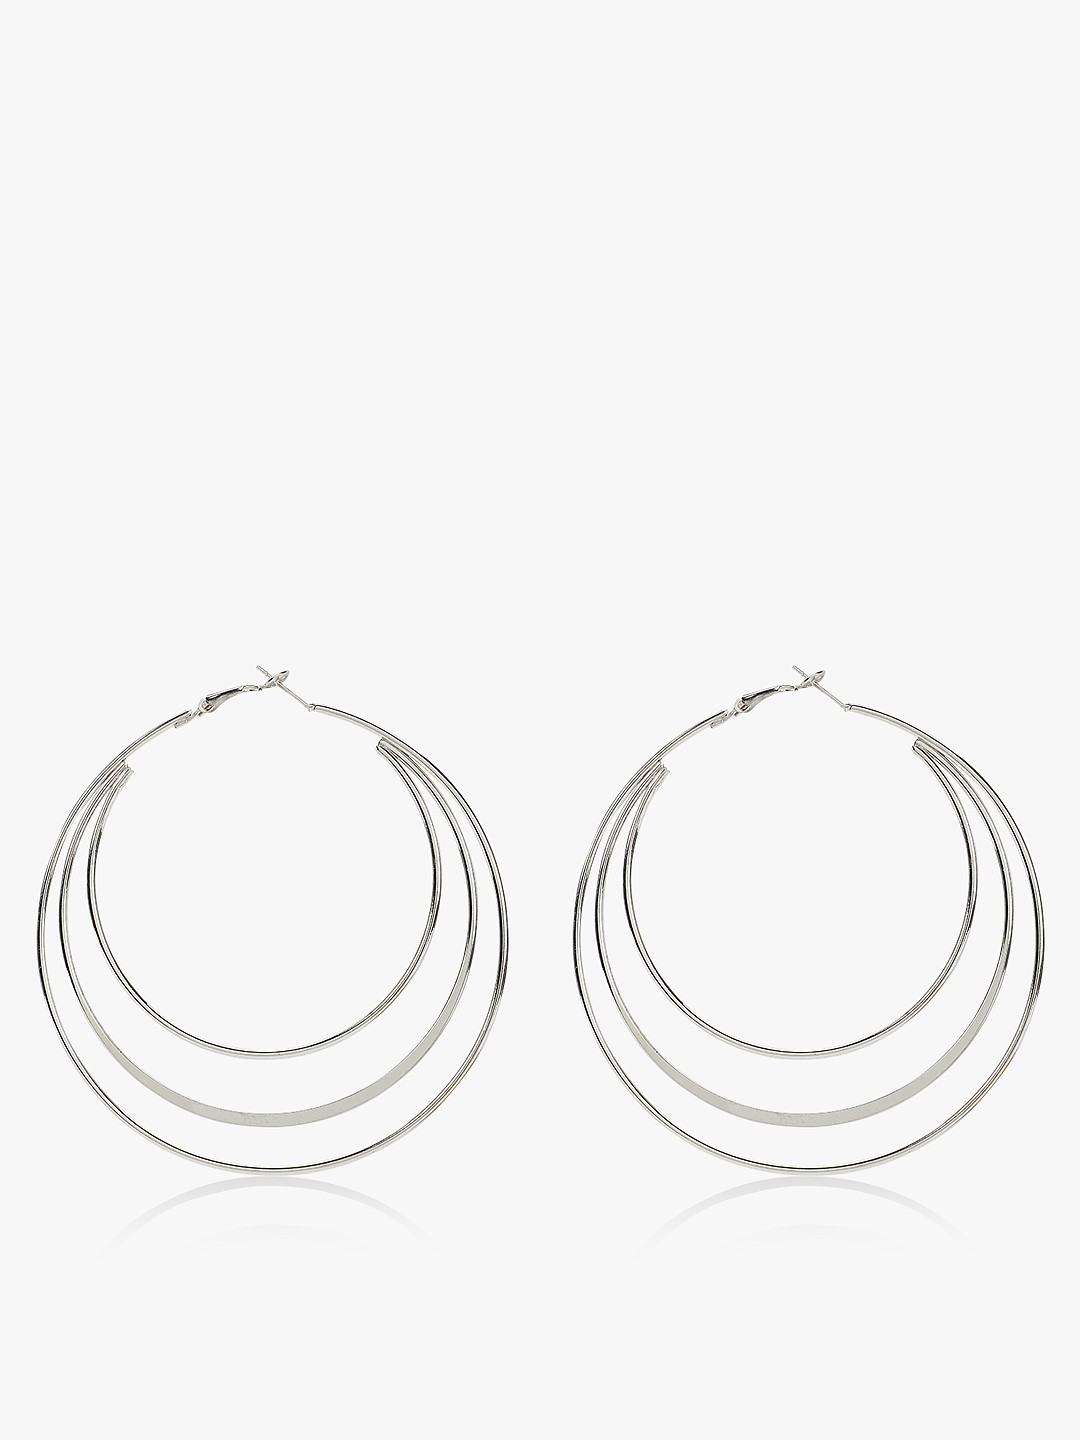 Zero Kaata Silver Multi-Hoop Earrings 1